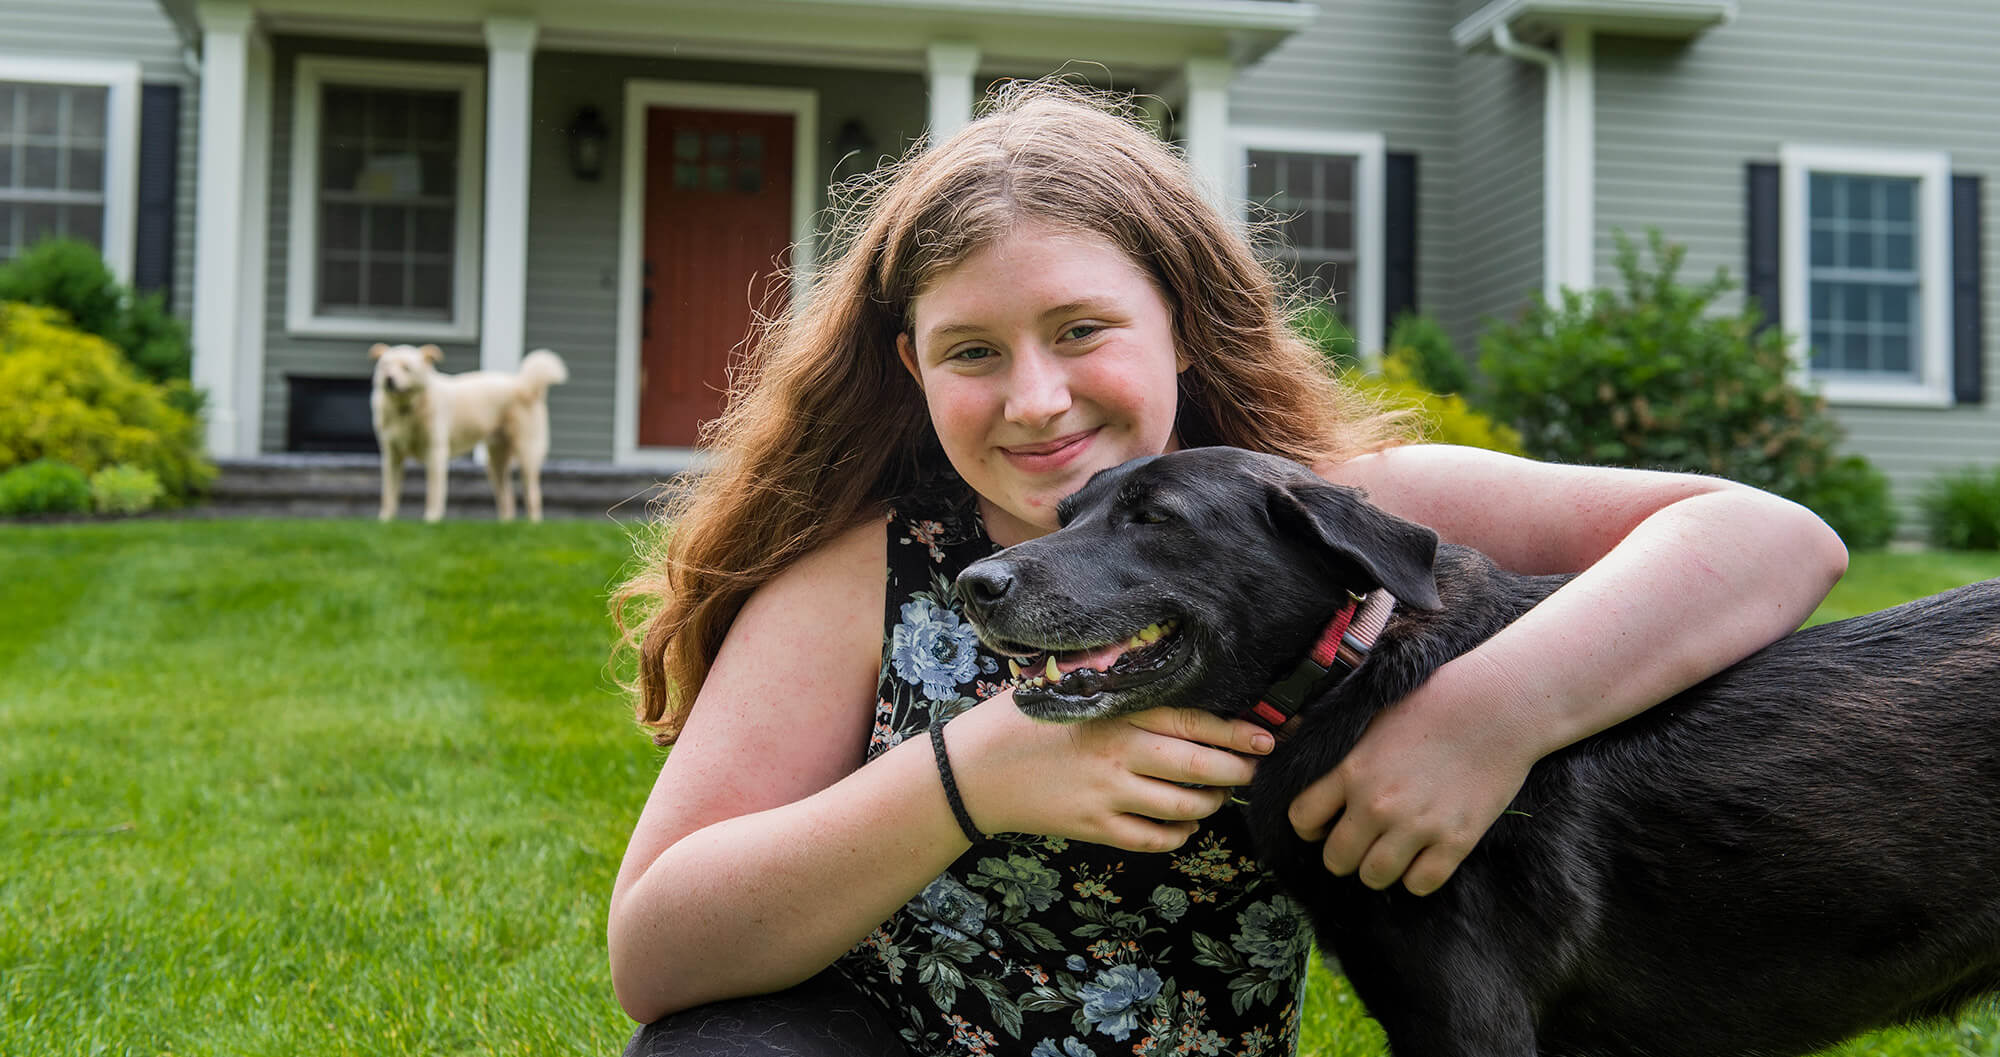 Girl smiling and holding a black dog